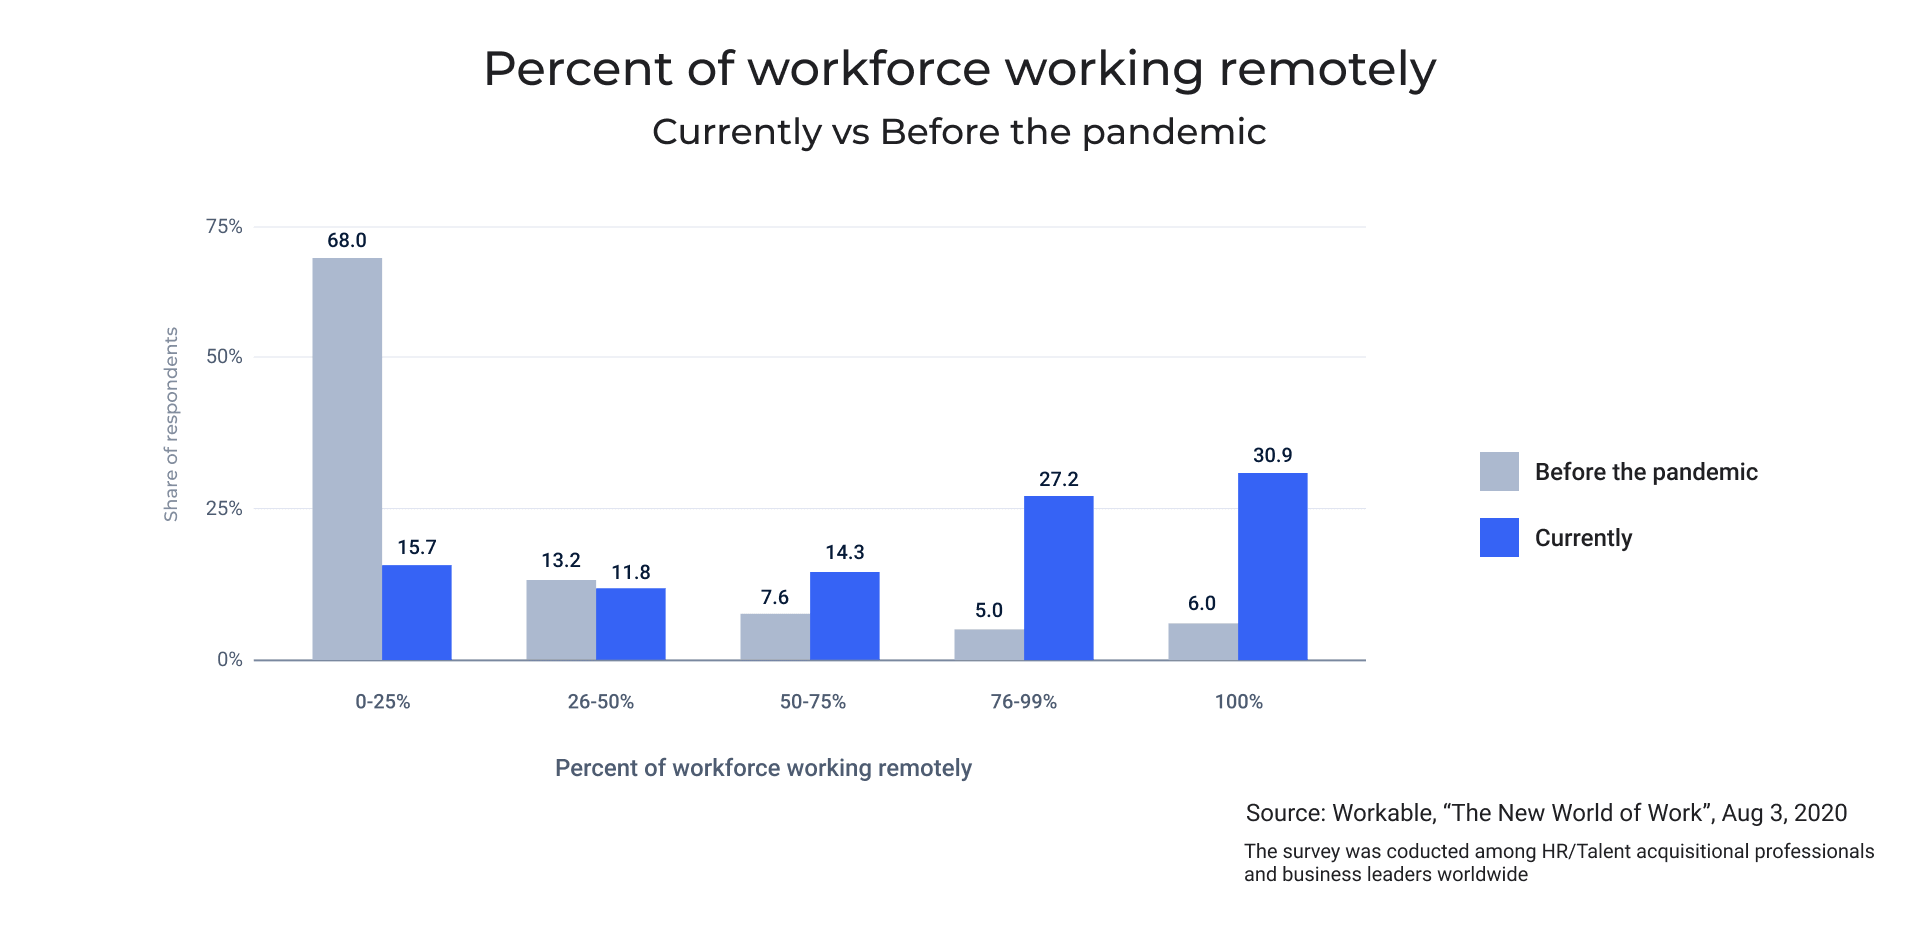 Percent of workforce working remotely